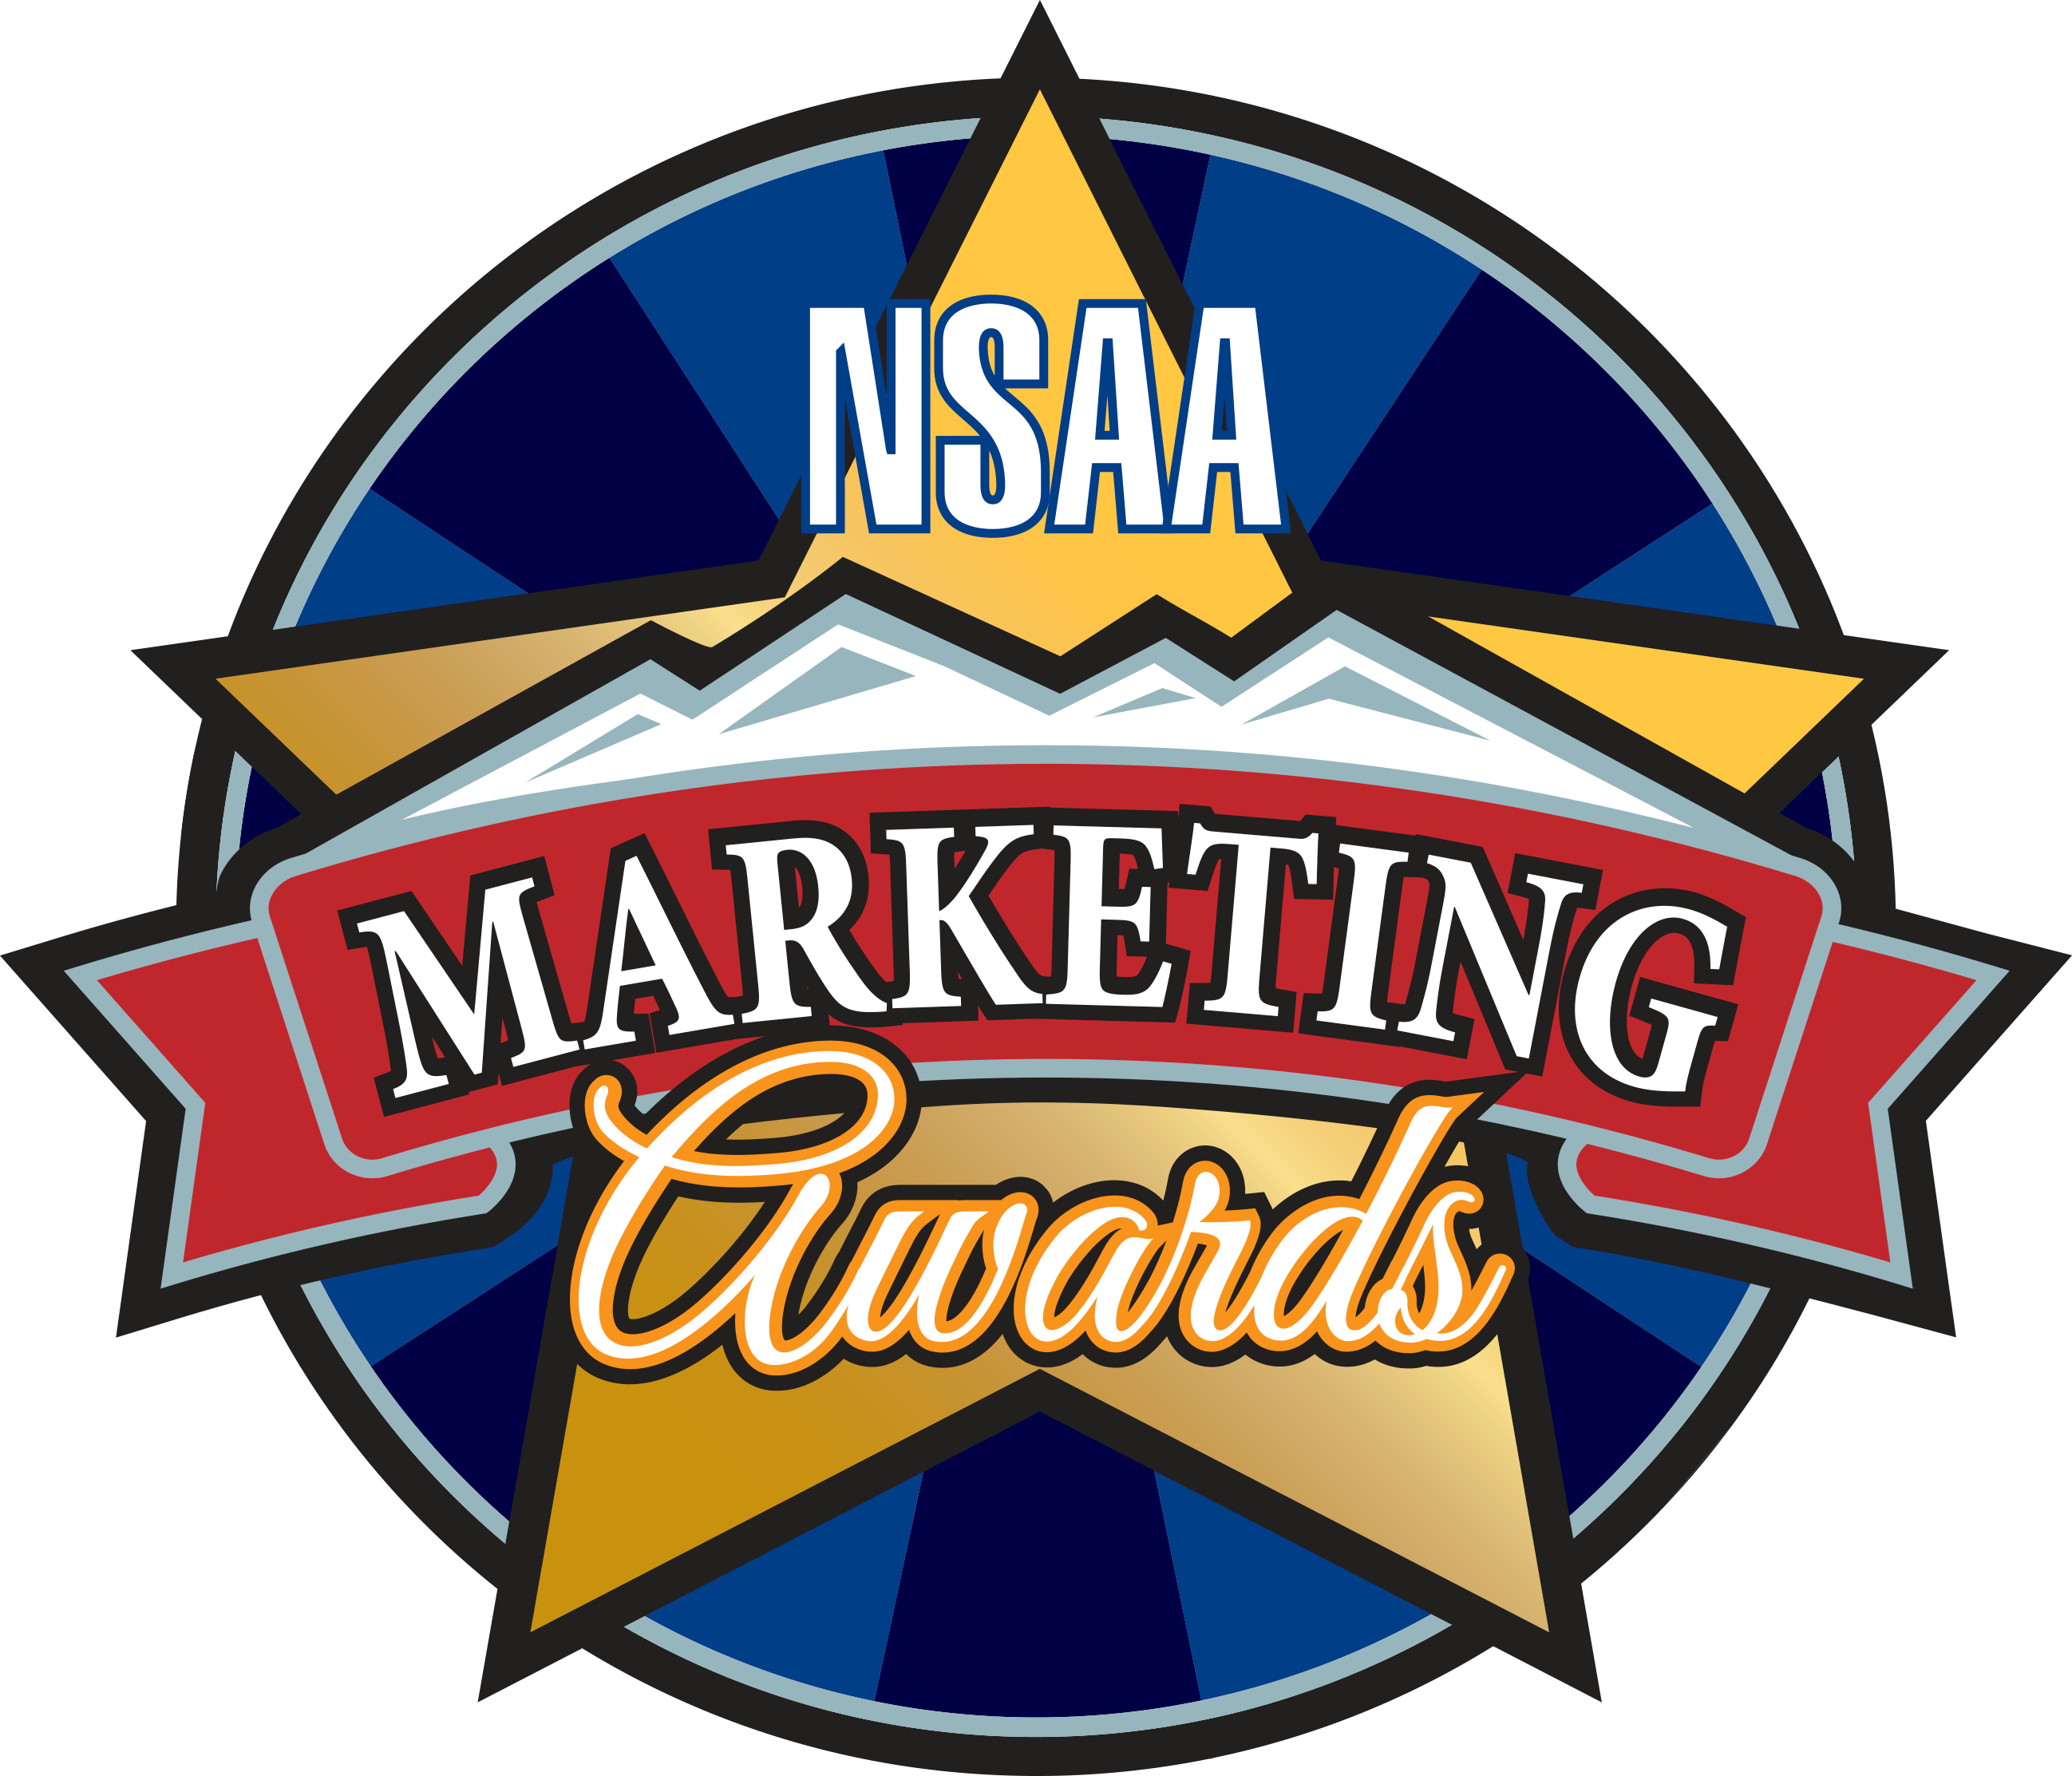 marketing awards logo